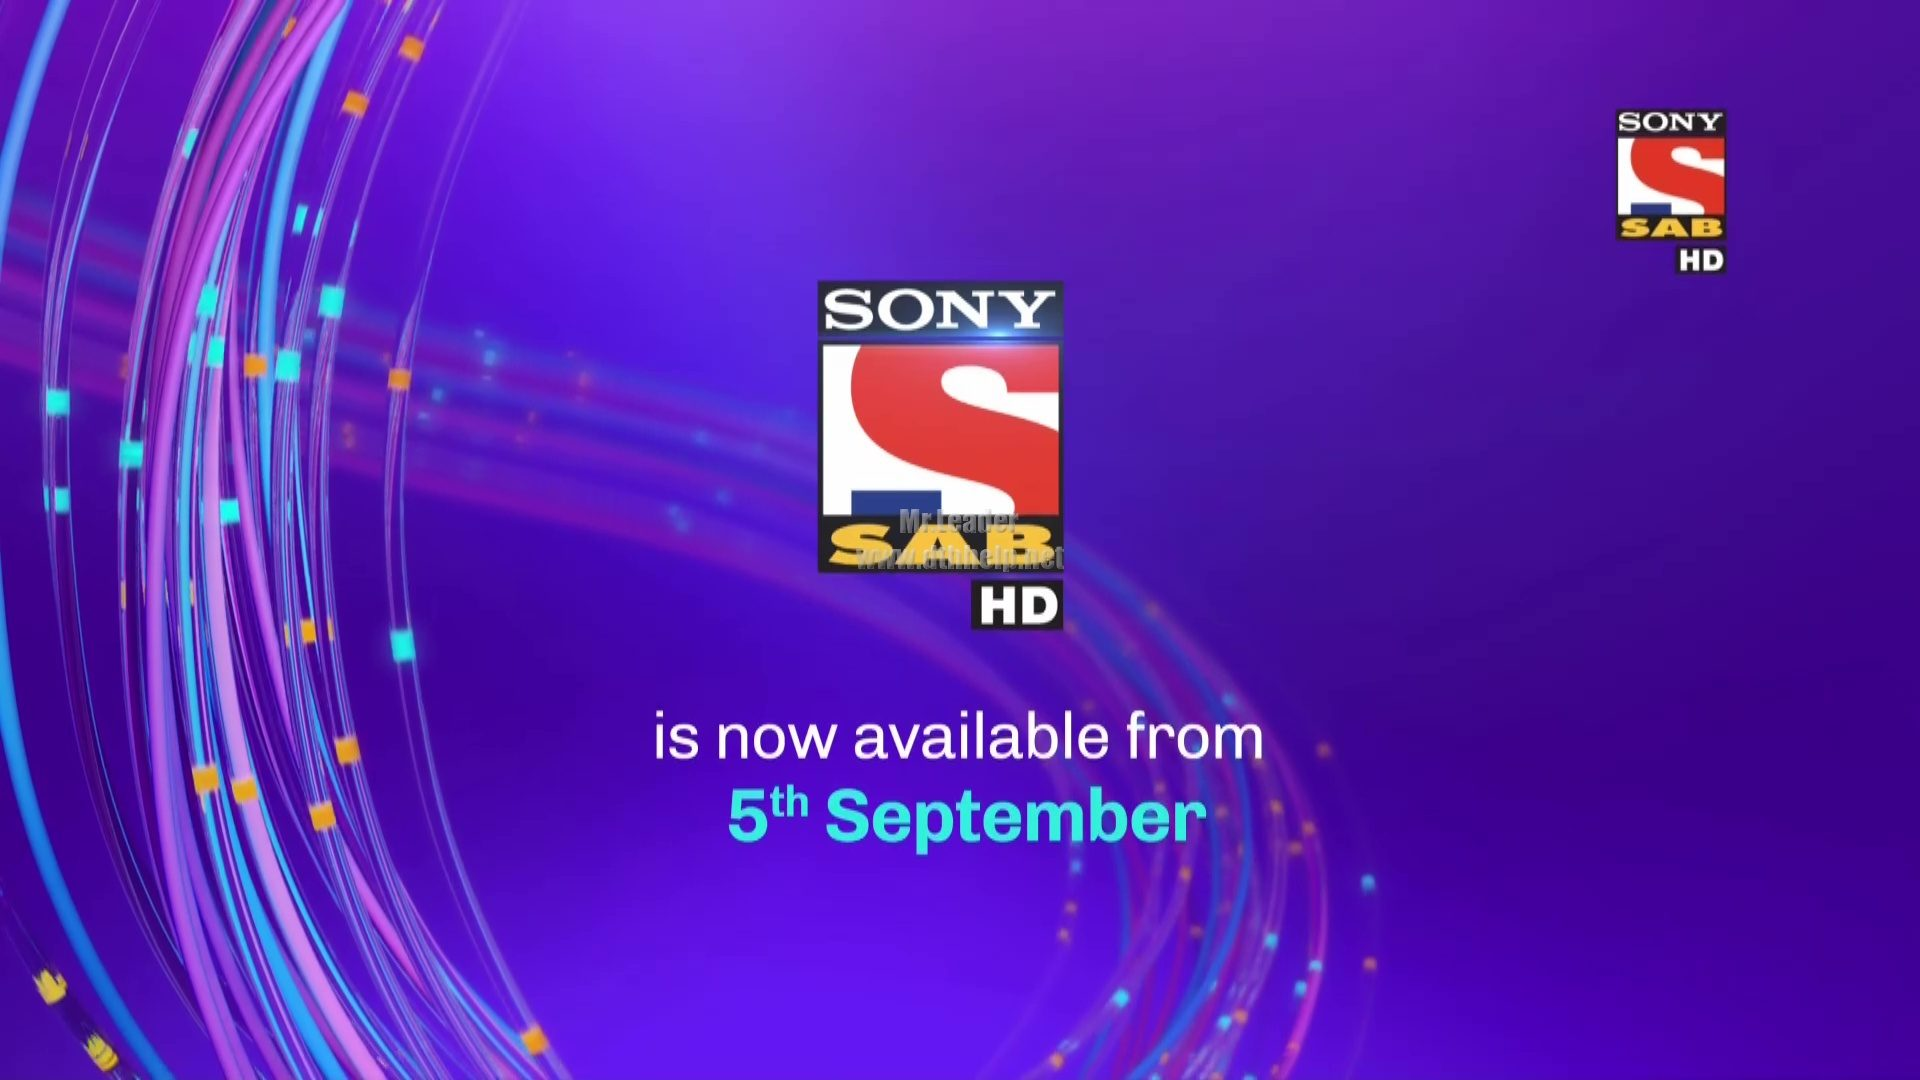 SAB HD added on Dish TV on the frequency 12520 V – updated on 05-September-16 at 00:42